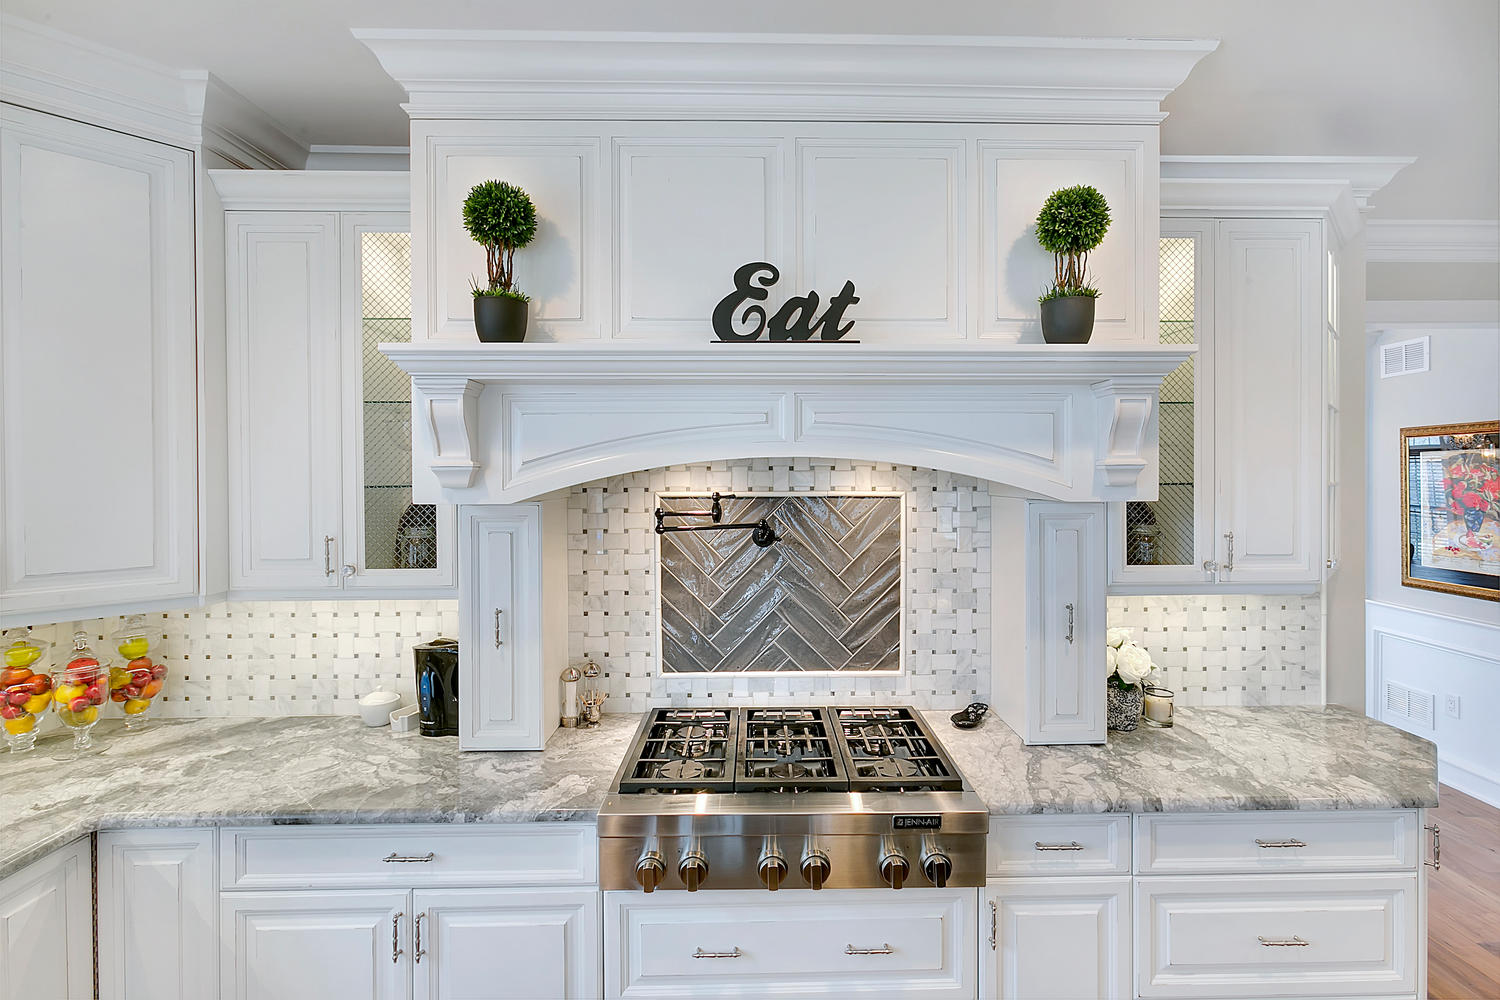 Merveilleux White Arched Hood With Spice Pullouts